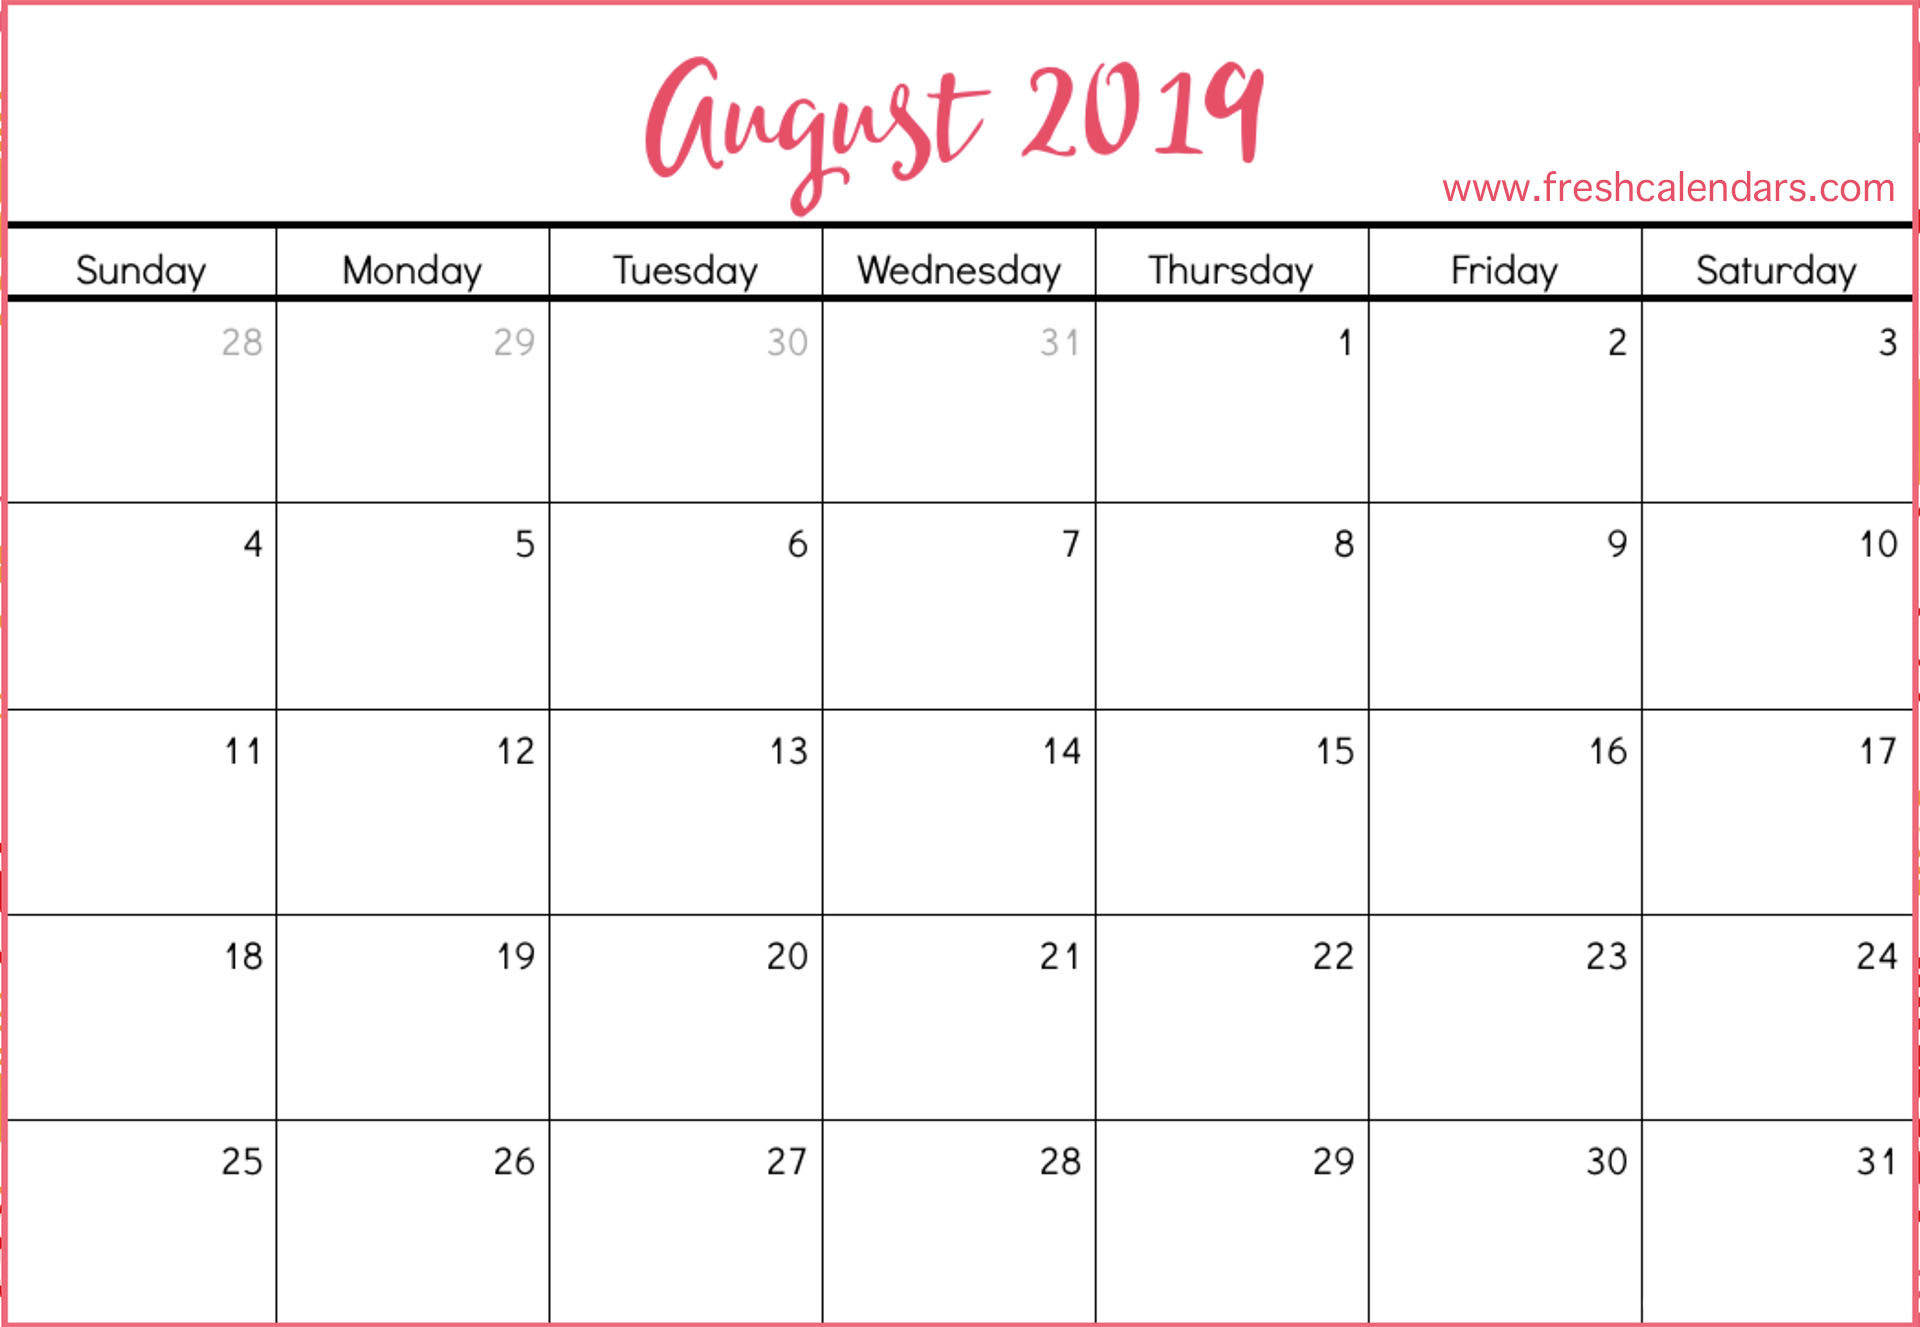 August 2019 Calendar Printable - Fresh Calendars throughout August Calendar Template To Type In